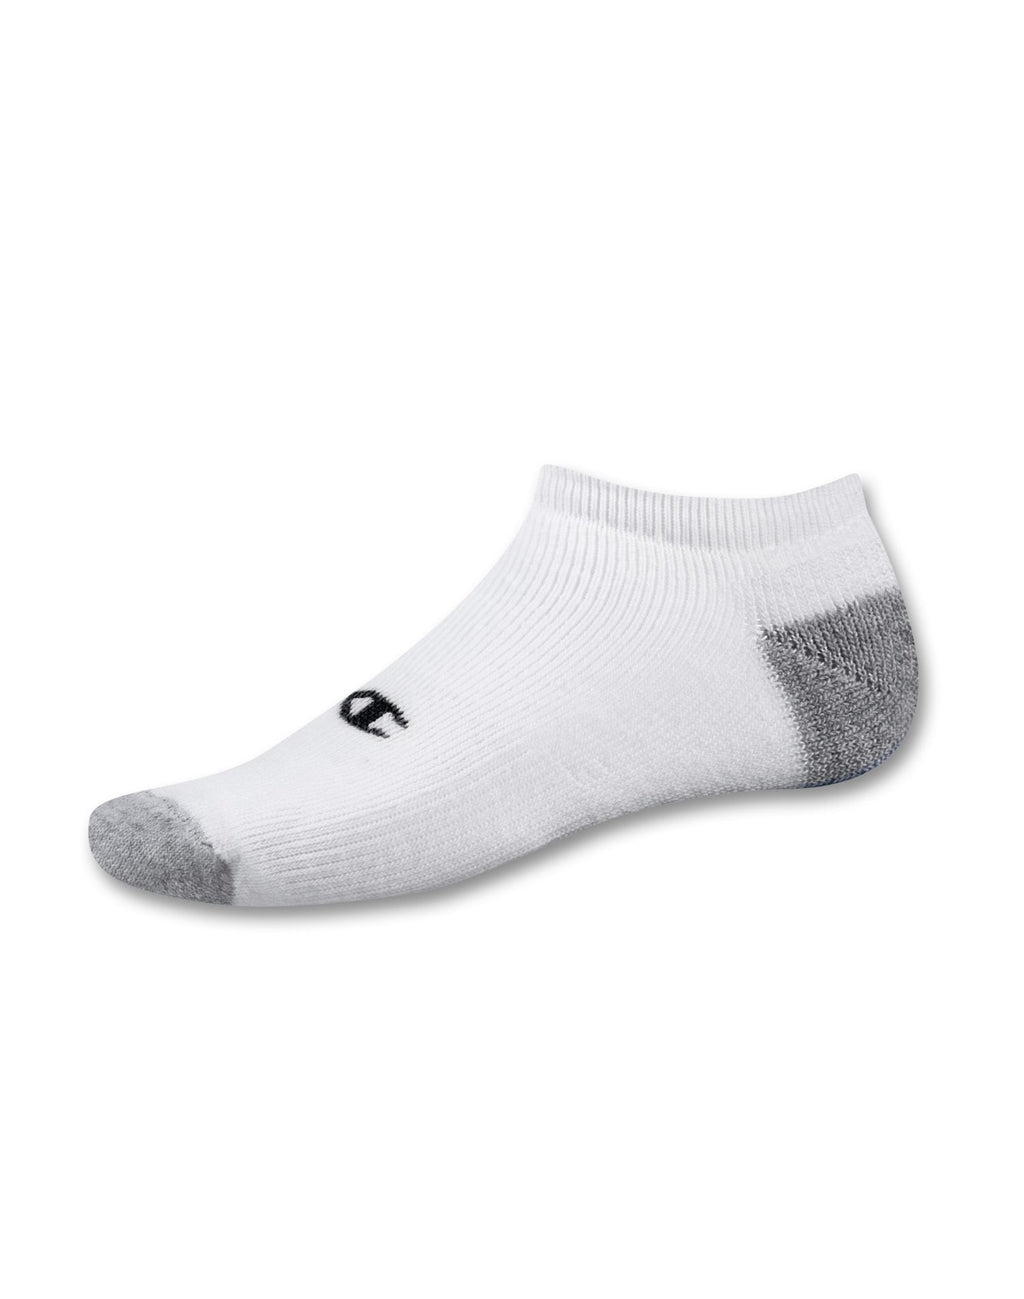 Champion Double Dry Performance No-Show Men's Athletic Socks 6-Pack